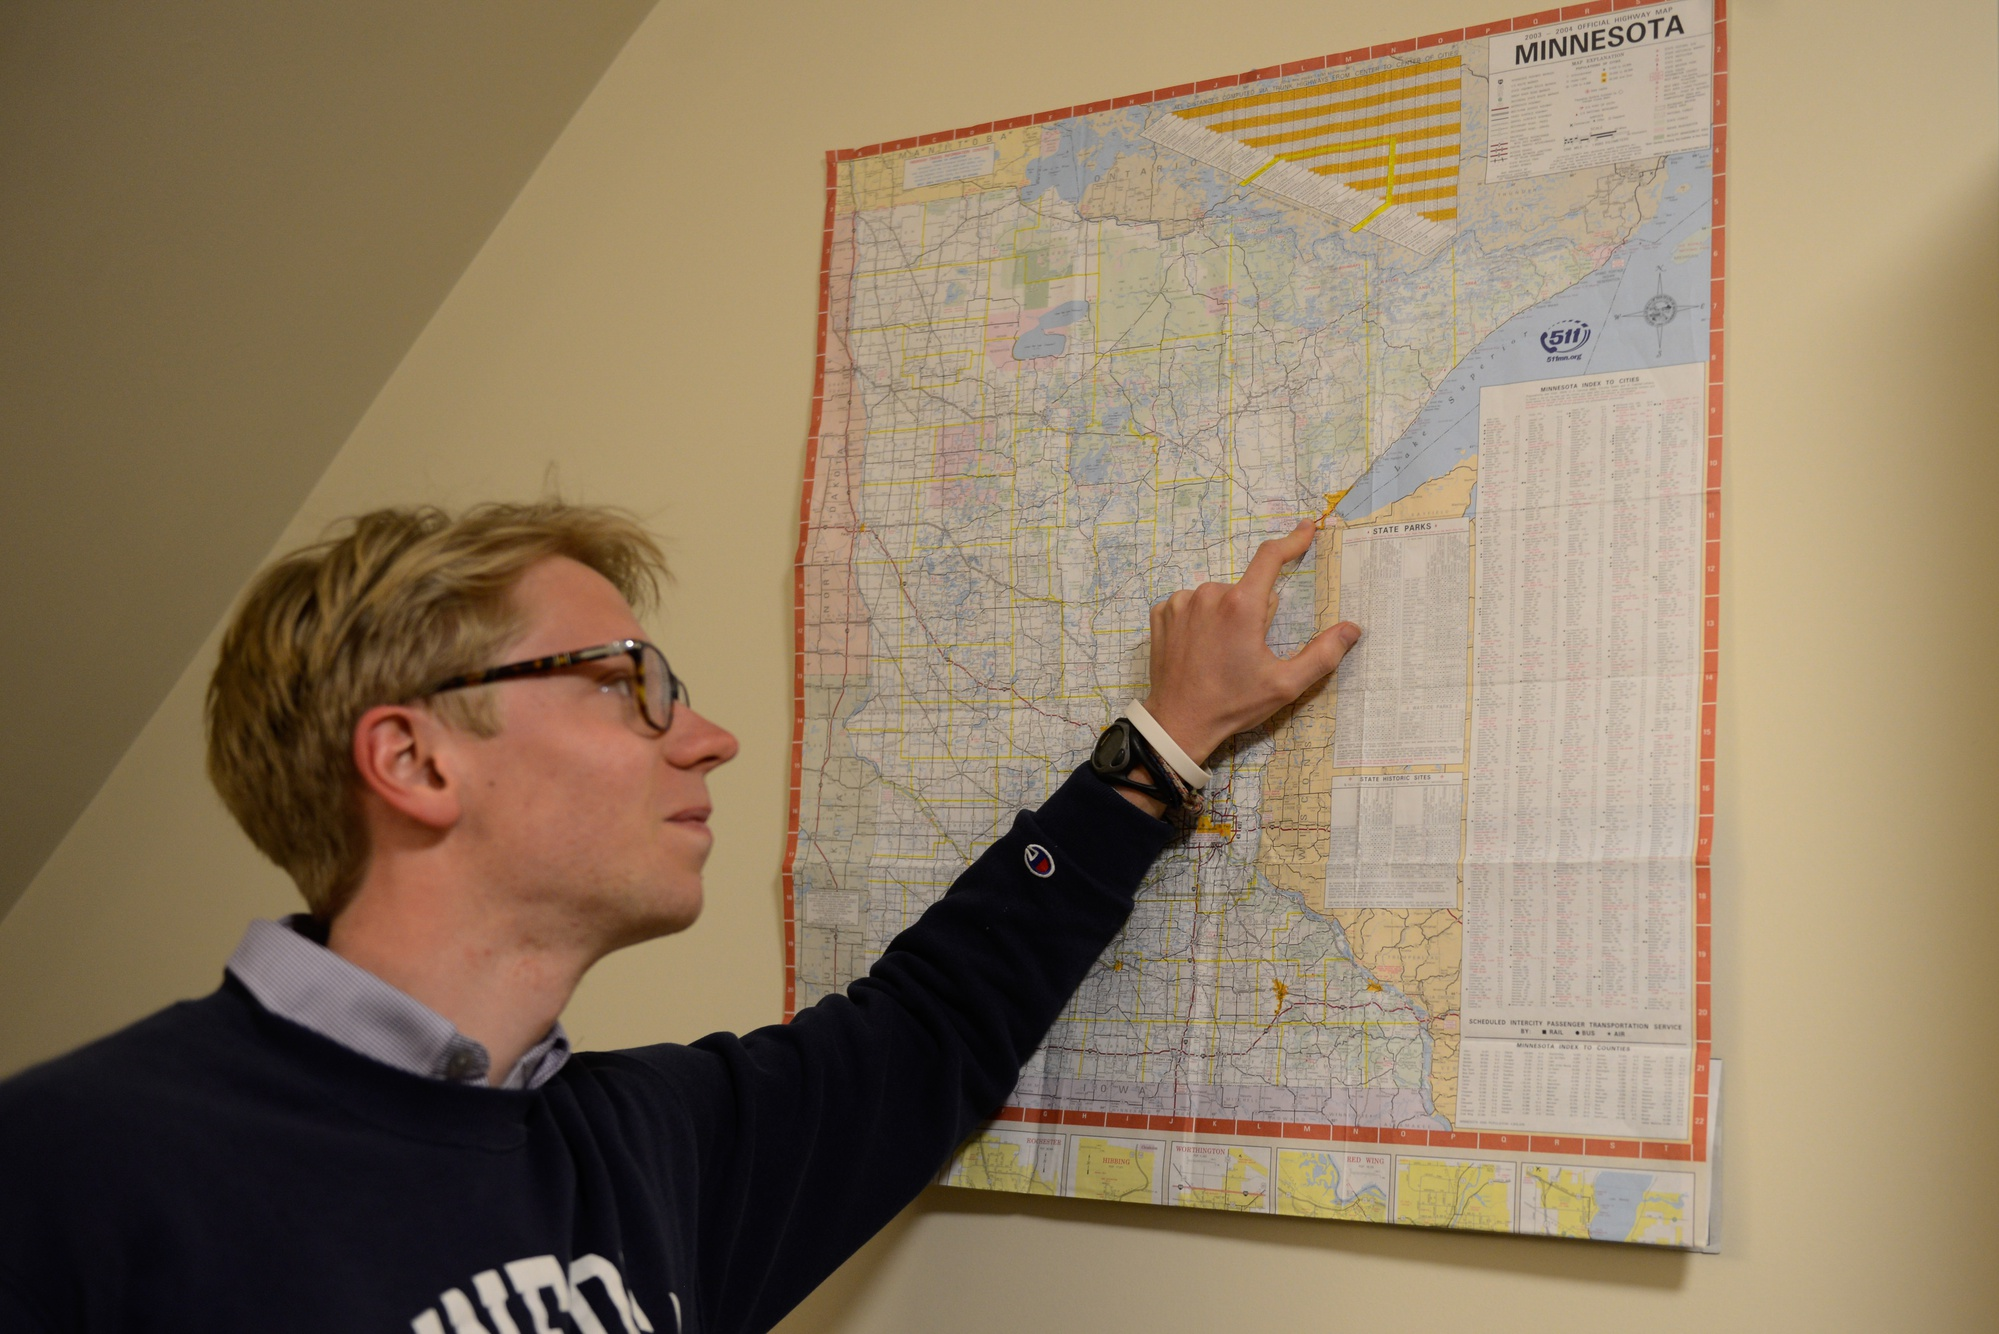 Luke R. Heine '17 shows off his hometown, Duluth, Minn., on a map in his bedroom.